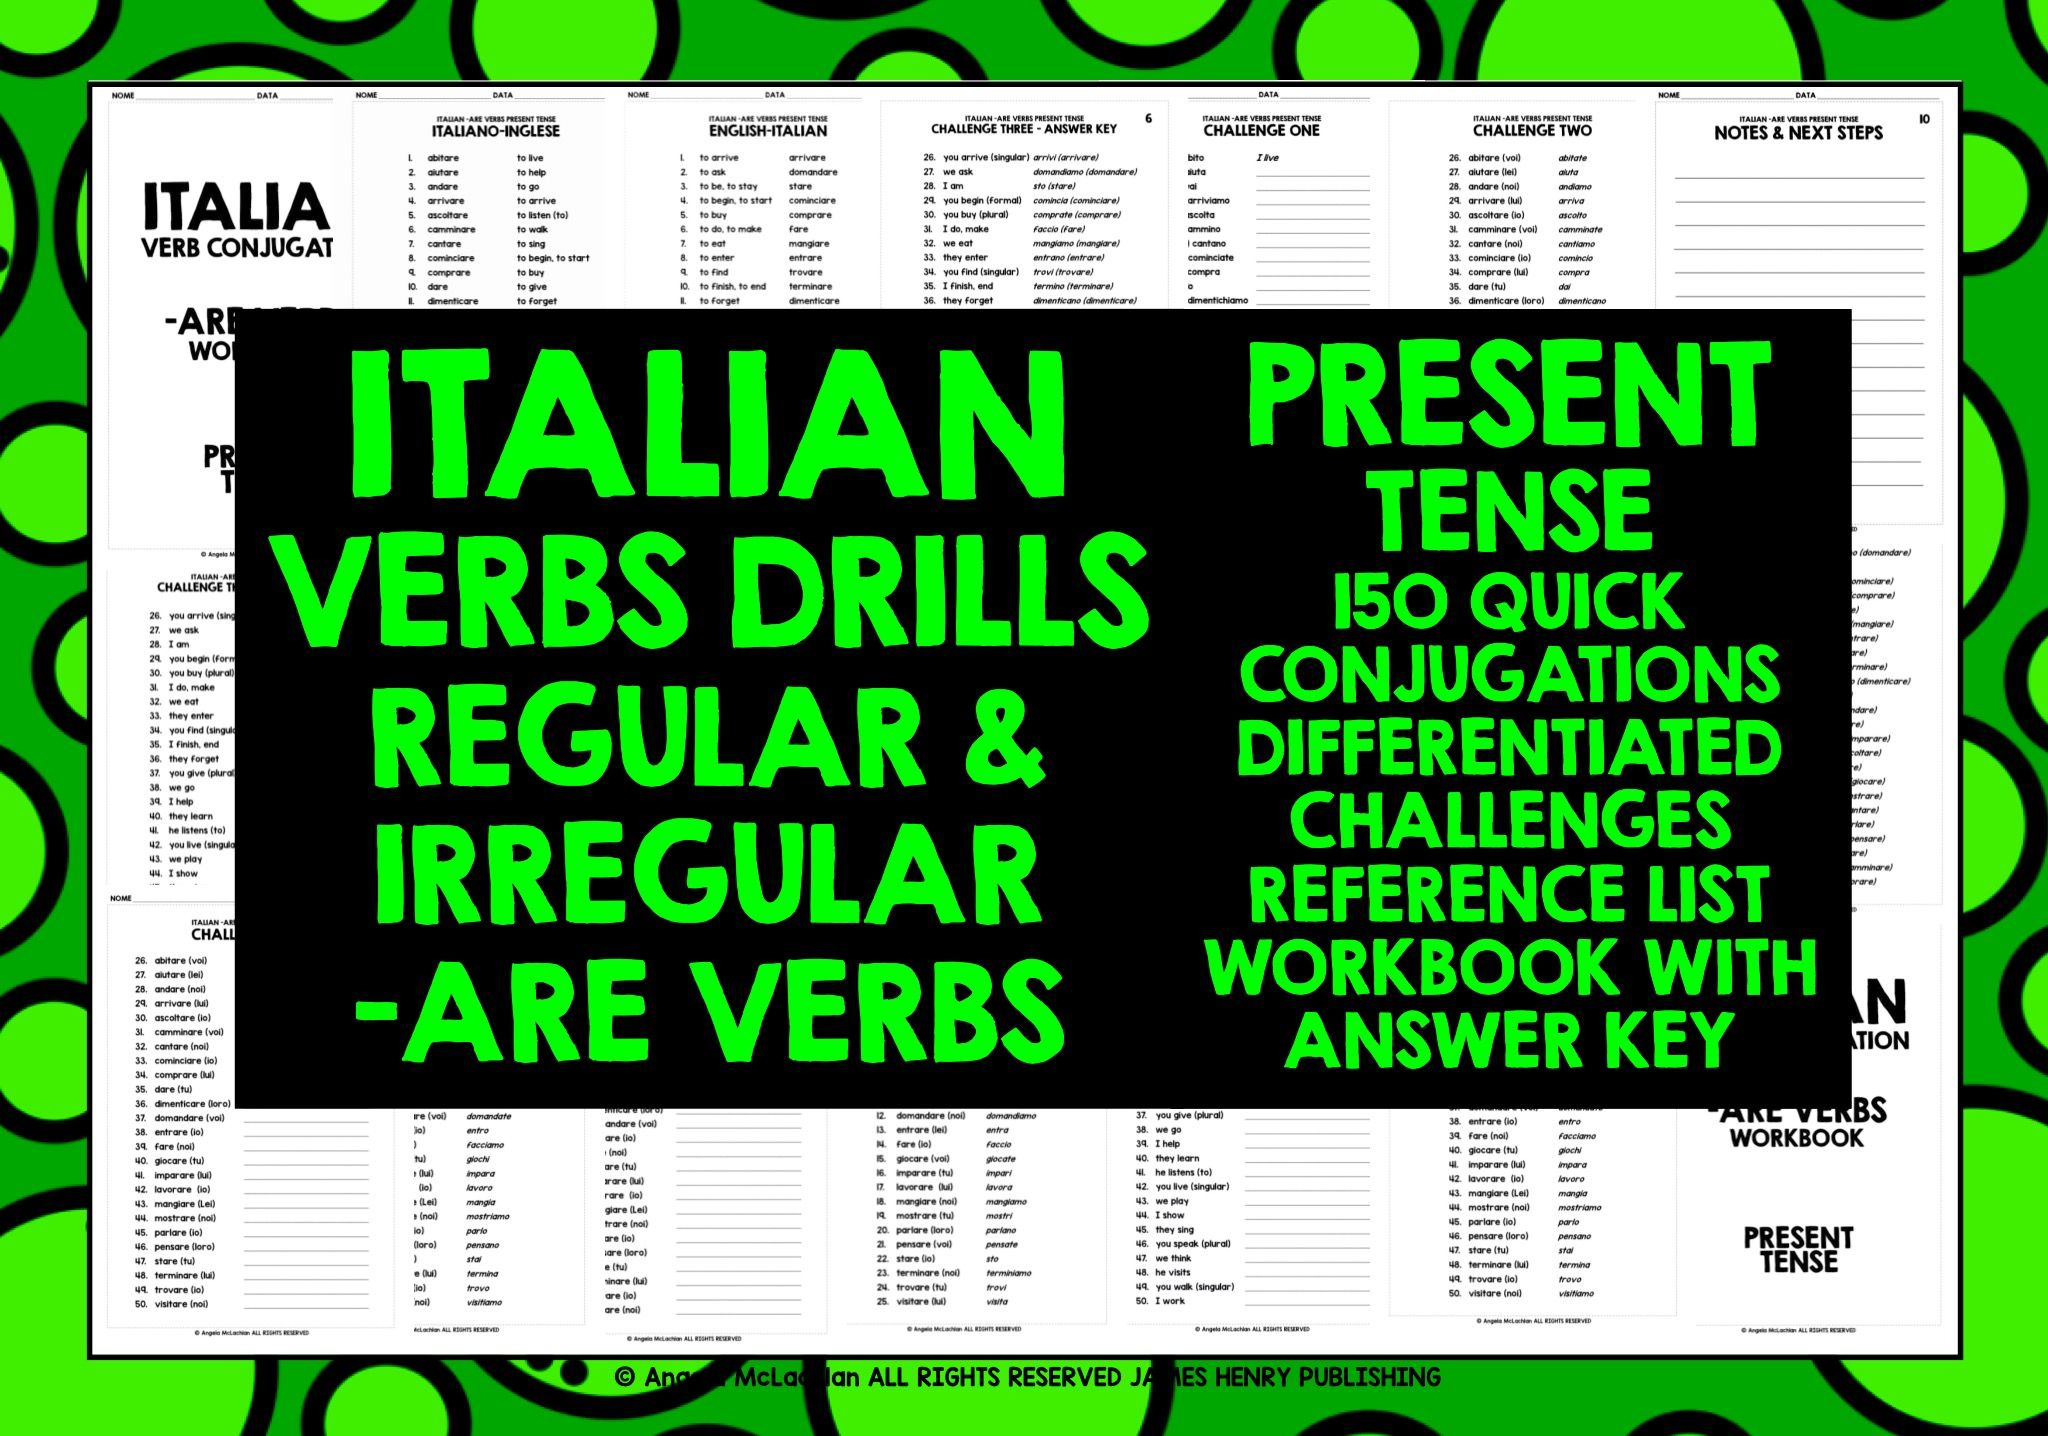 Italian Are Verbs Conjugation 1 Verb Conjugation Present Tense Verbs Student Encouragement